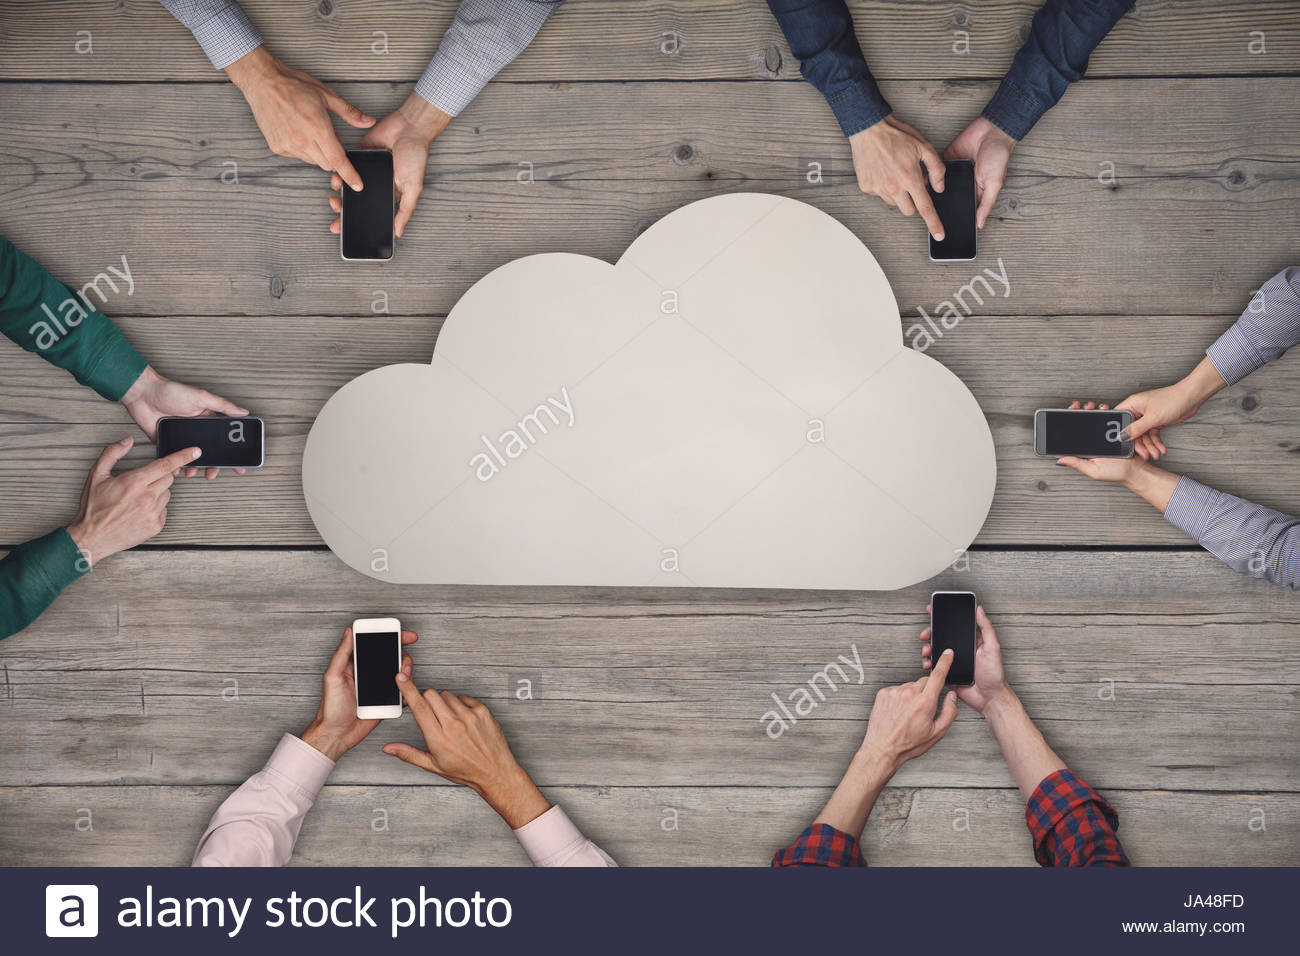 """WORKING IN """"THE CLOUD"""""""